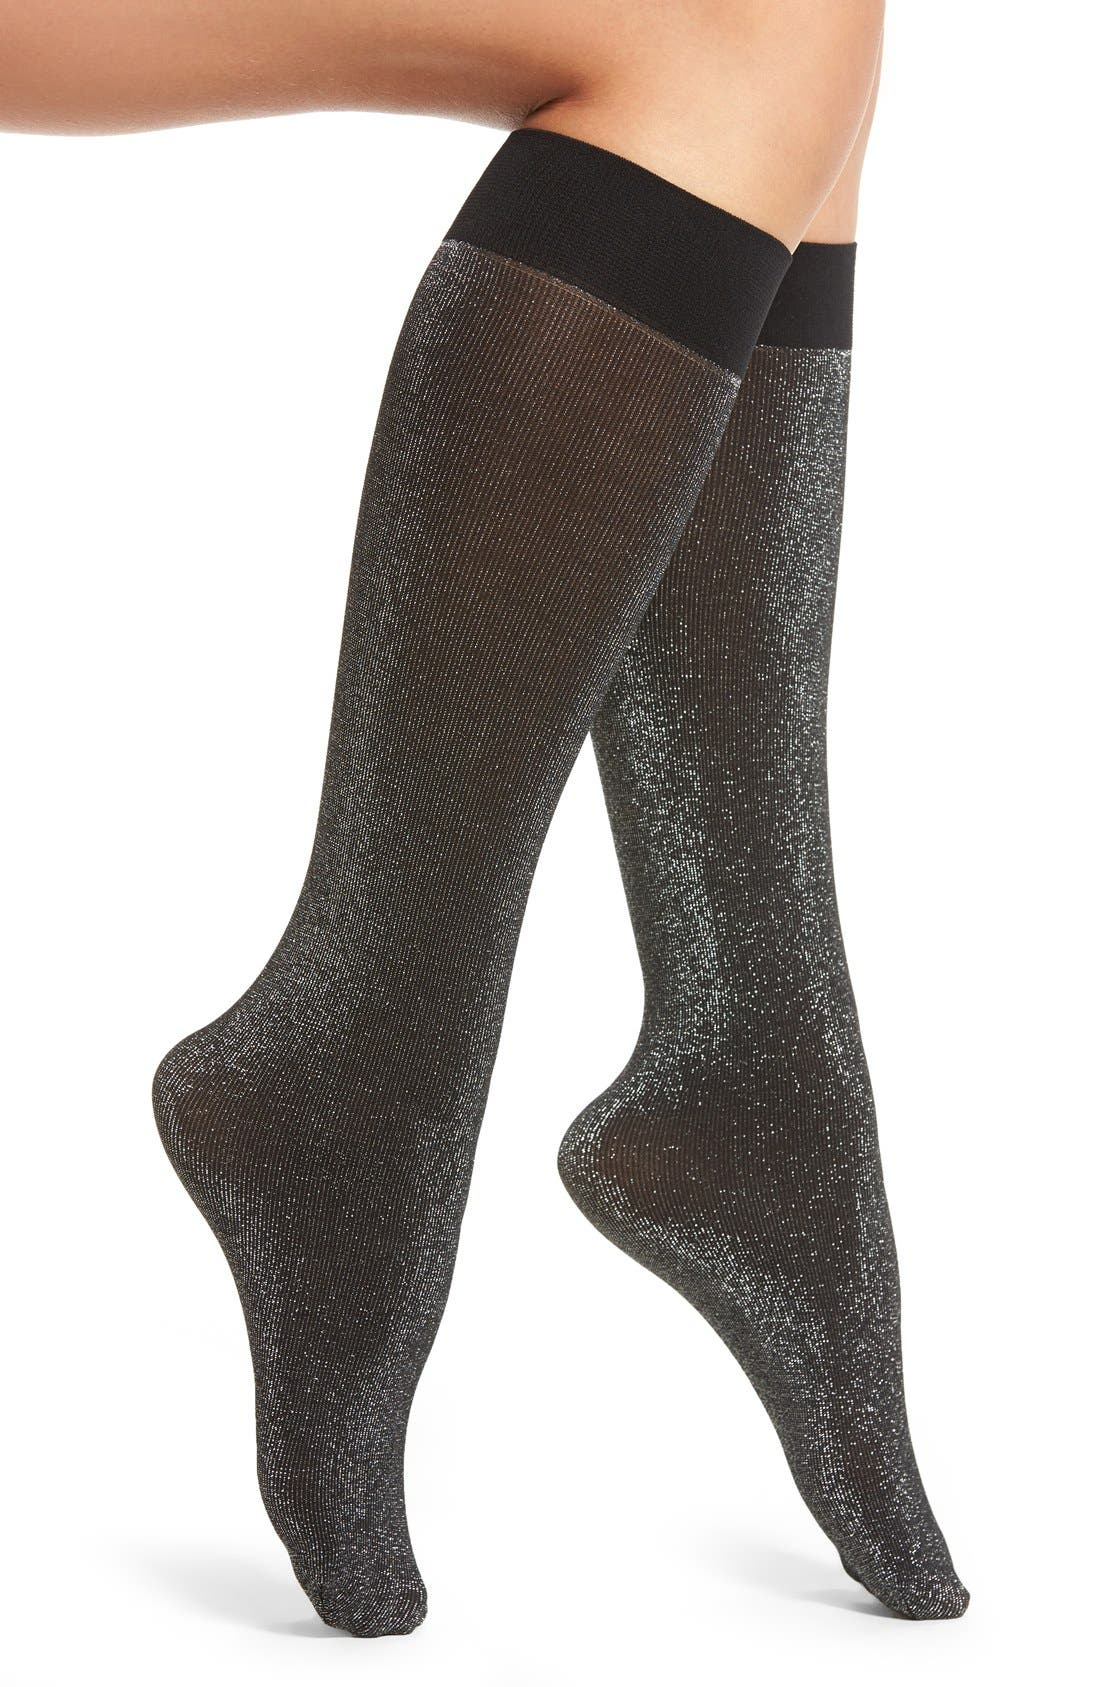 Shimmer Knee Socks,                         Main,                         color, 001